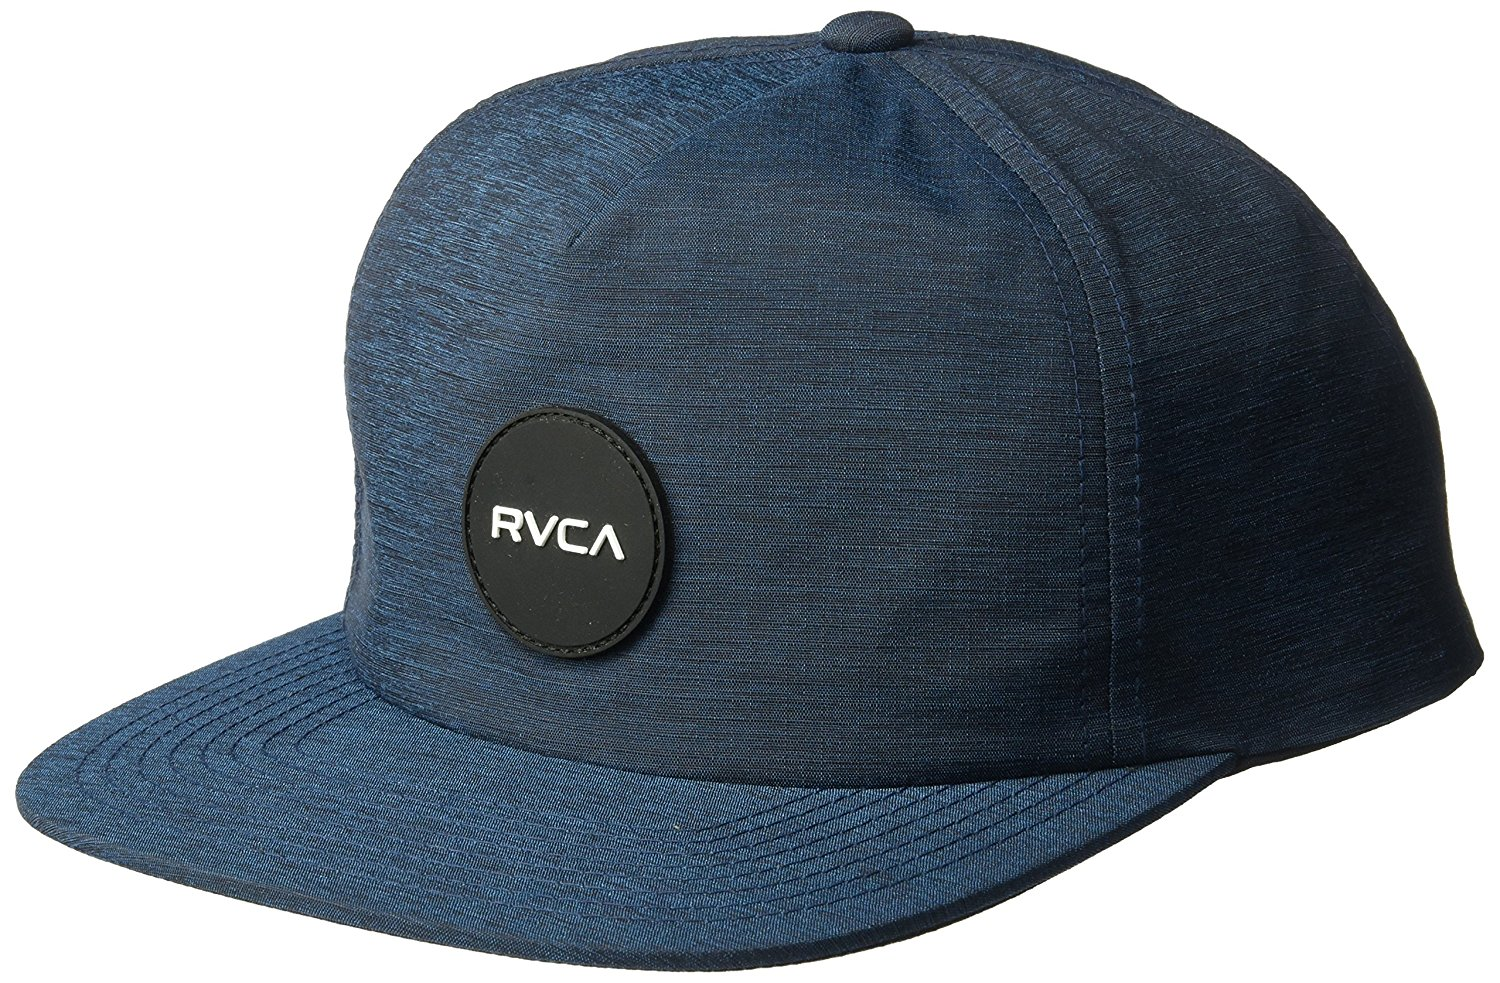 Buy RVCA Mens The Delux Hat in Cheap Price on Alibaba.com b704838d07f